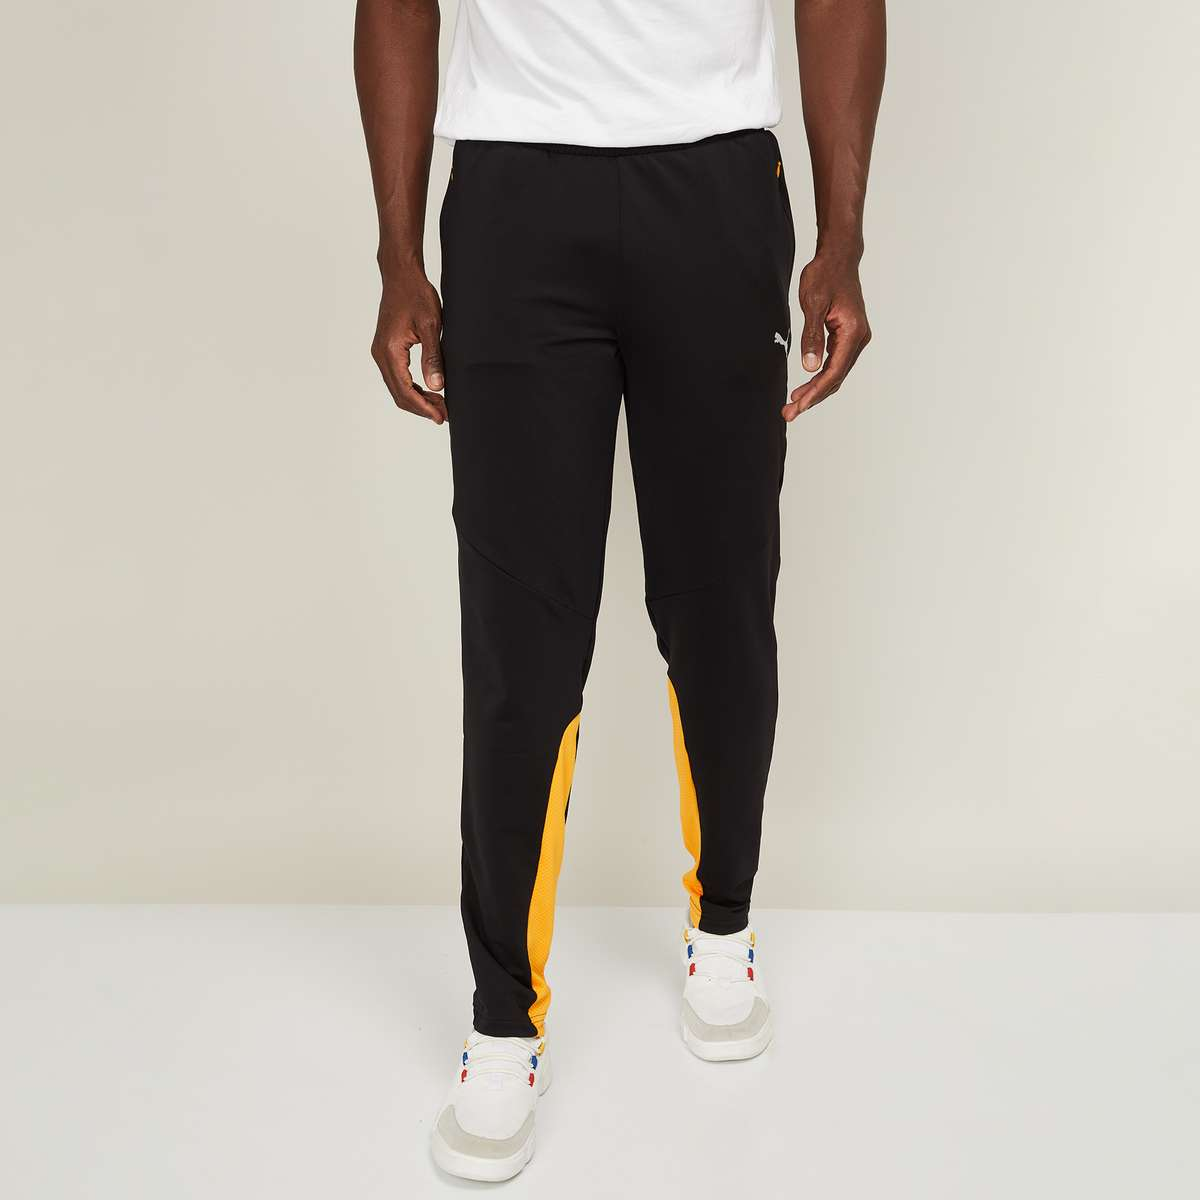 3.PUMA Men Printed Elasticated Track Pants